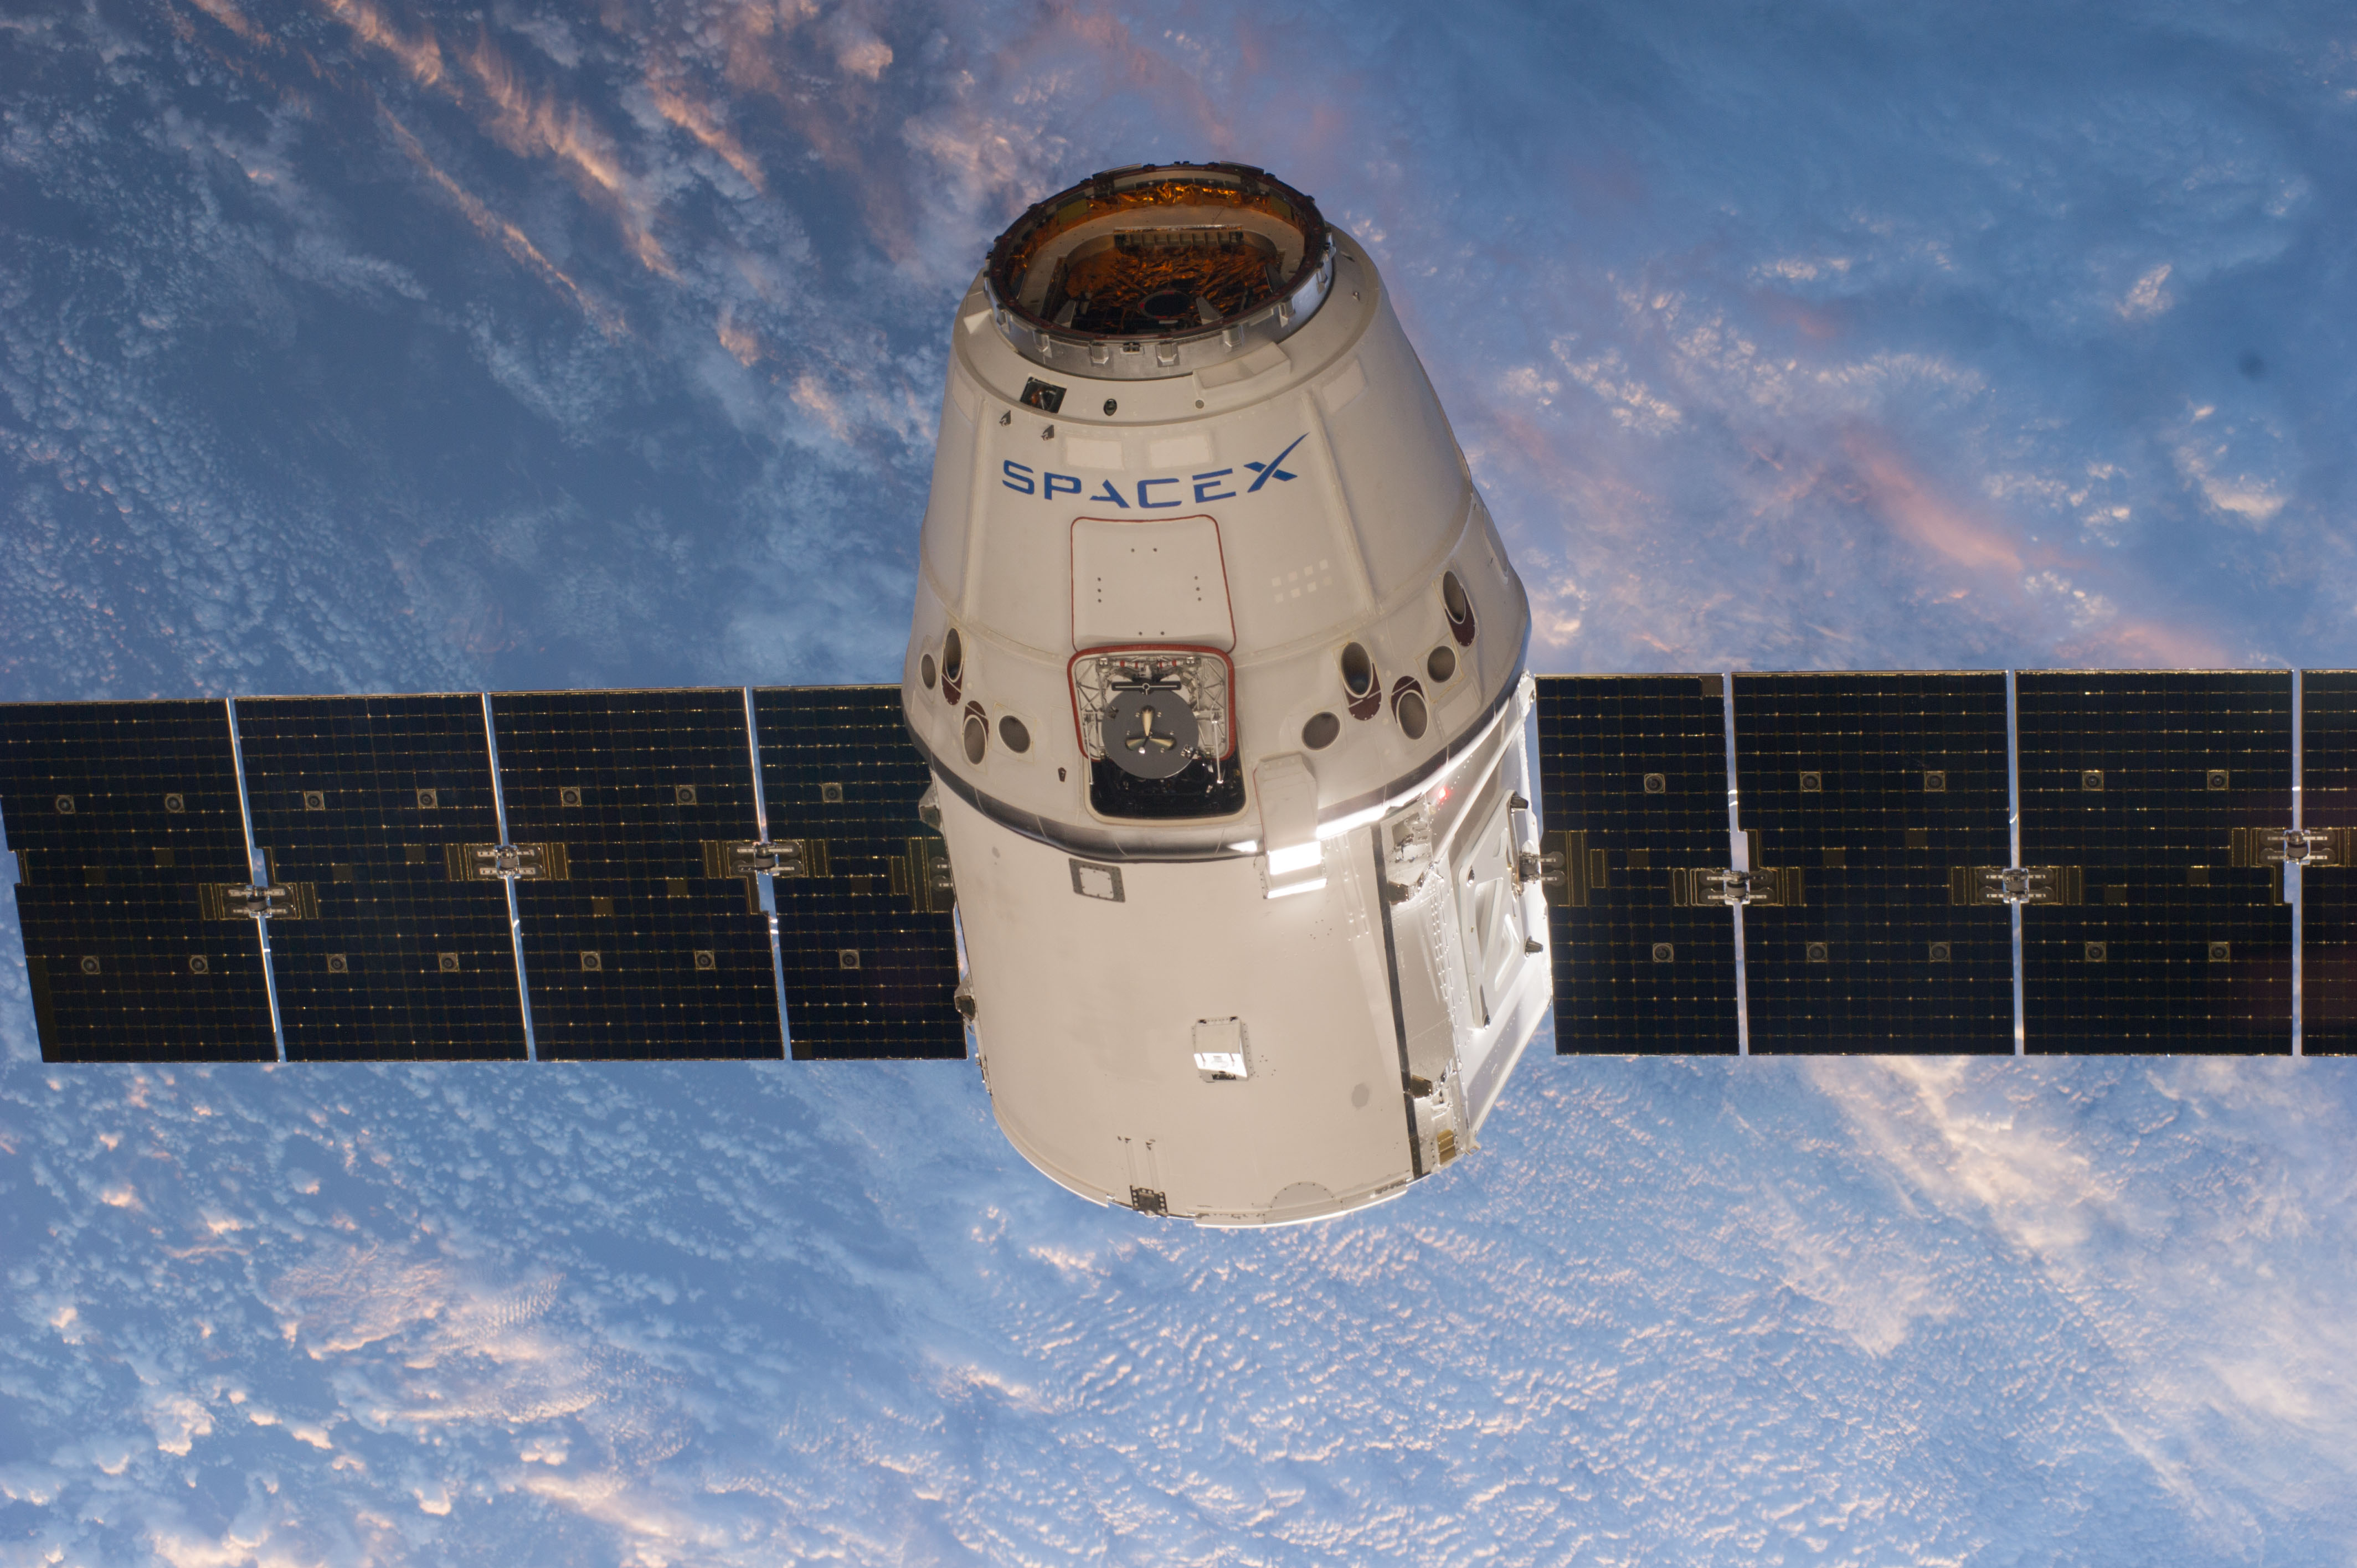 spacex commercial resupply services crs dragon spacecraft in orbit credits nasa